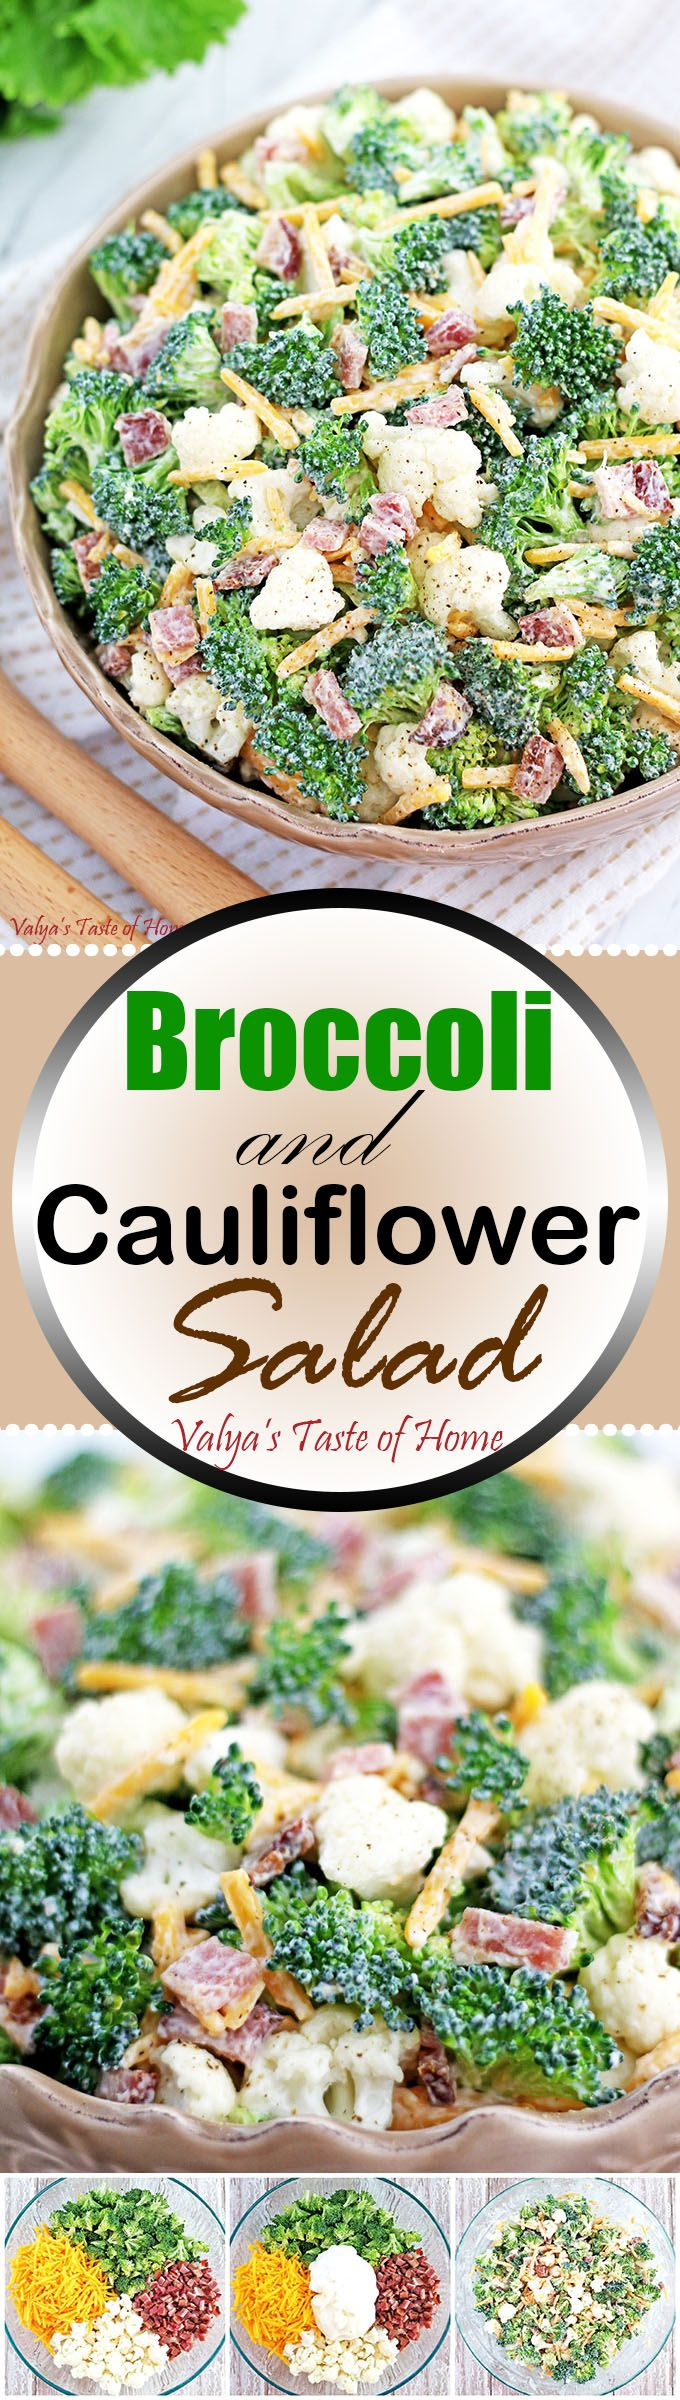 This salad is one that's so easy to prepare but tastes flavorful, refreshing and satisfying. One noteworthy tip is to soak the broccoli in freshly-squished lemon juice for extra flavor and crispness. It will also keep broccoli from losing that bright green fresh color. Bacon and freshly grated cheese give the additional boost in taste that kids love. The salad goes really well with many main courses but especially pasta courses.